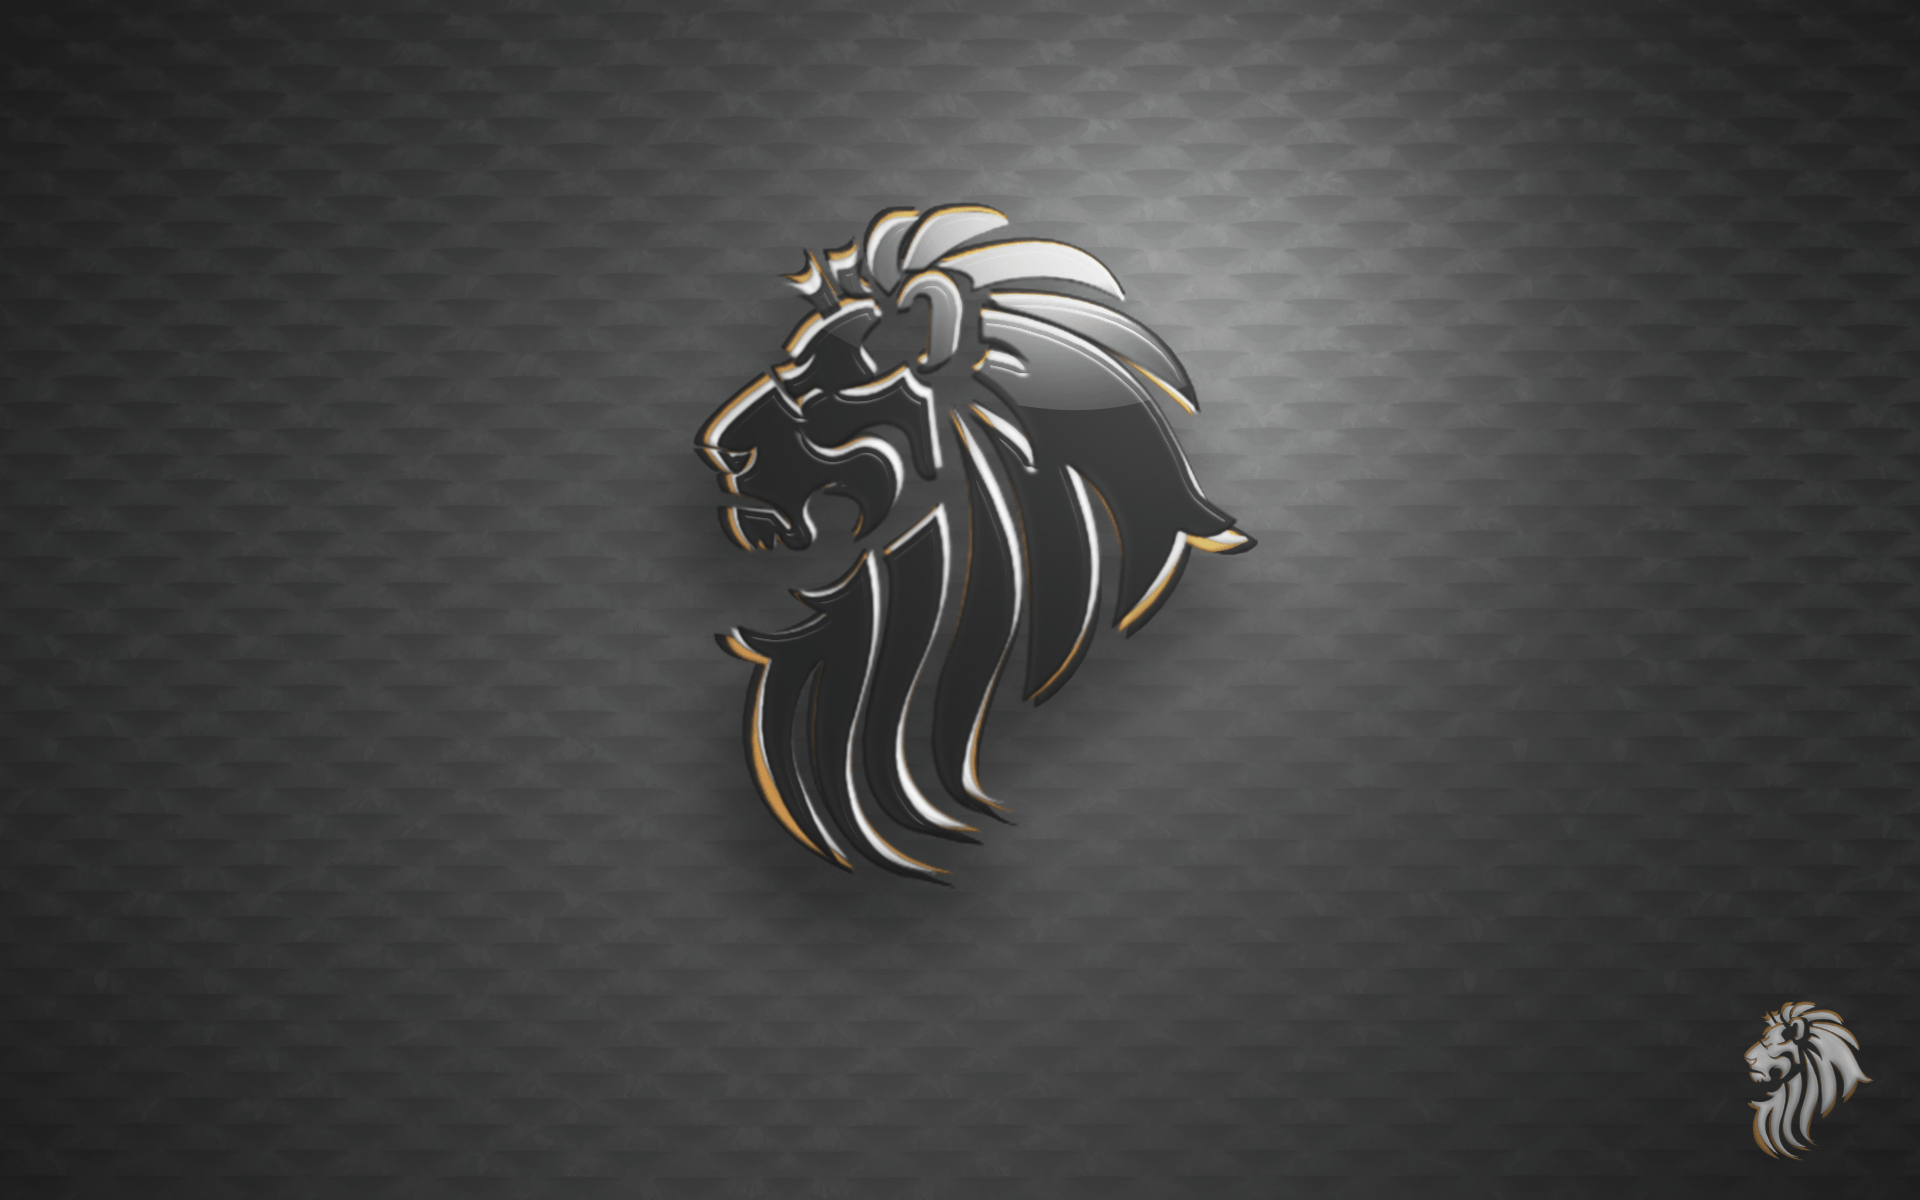 Lion Logo Wallpapers